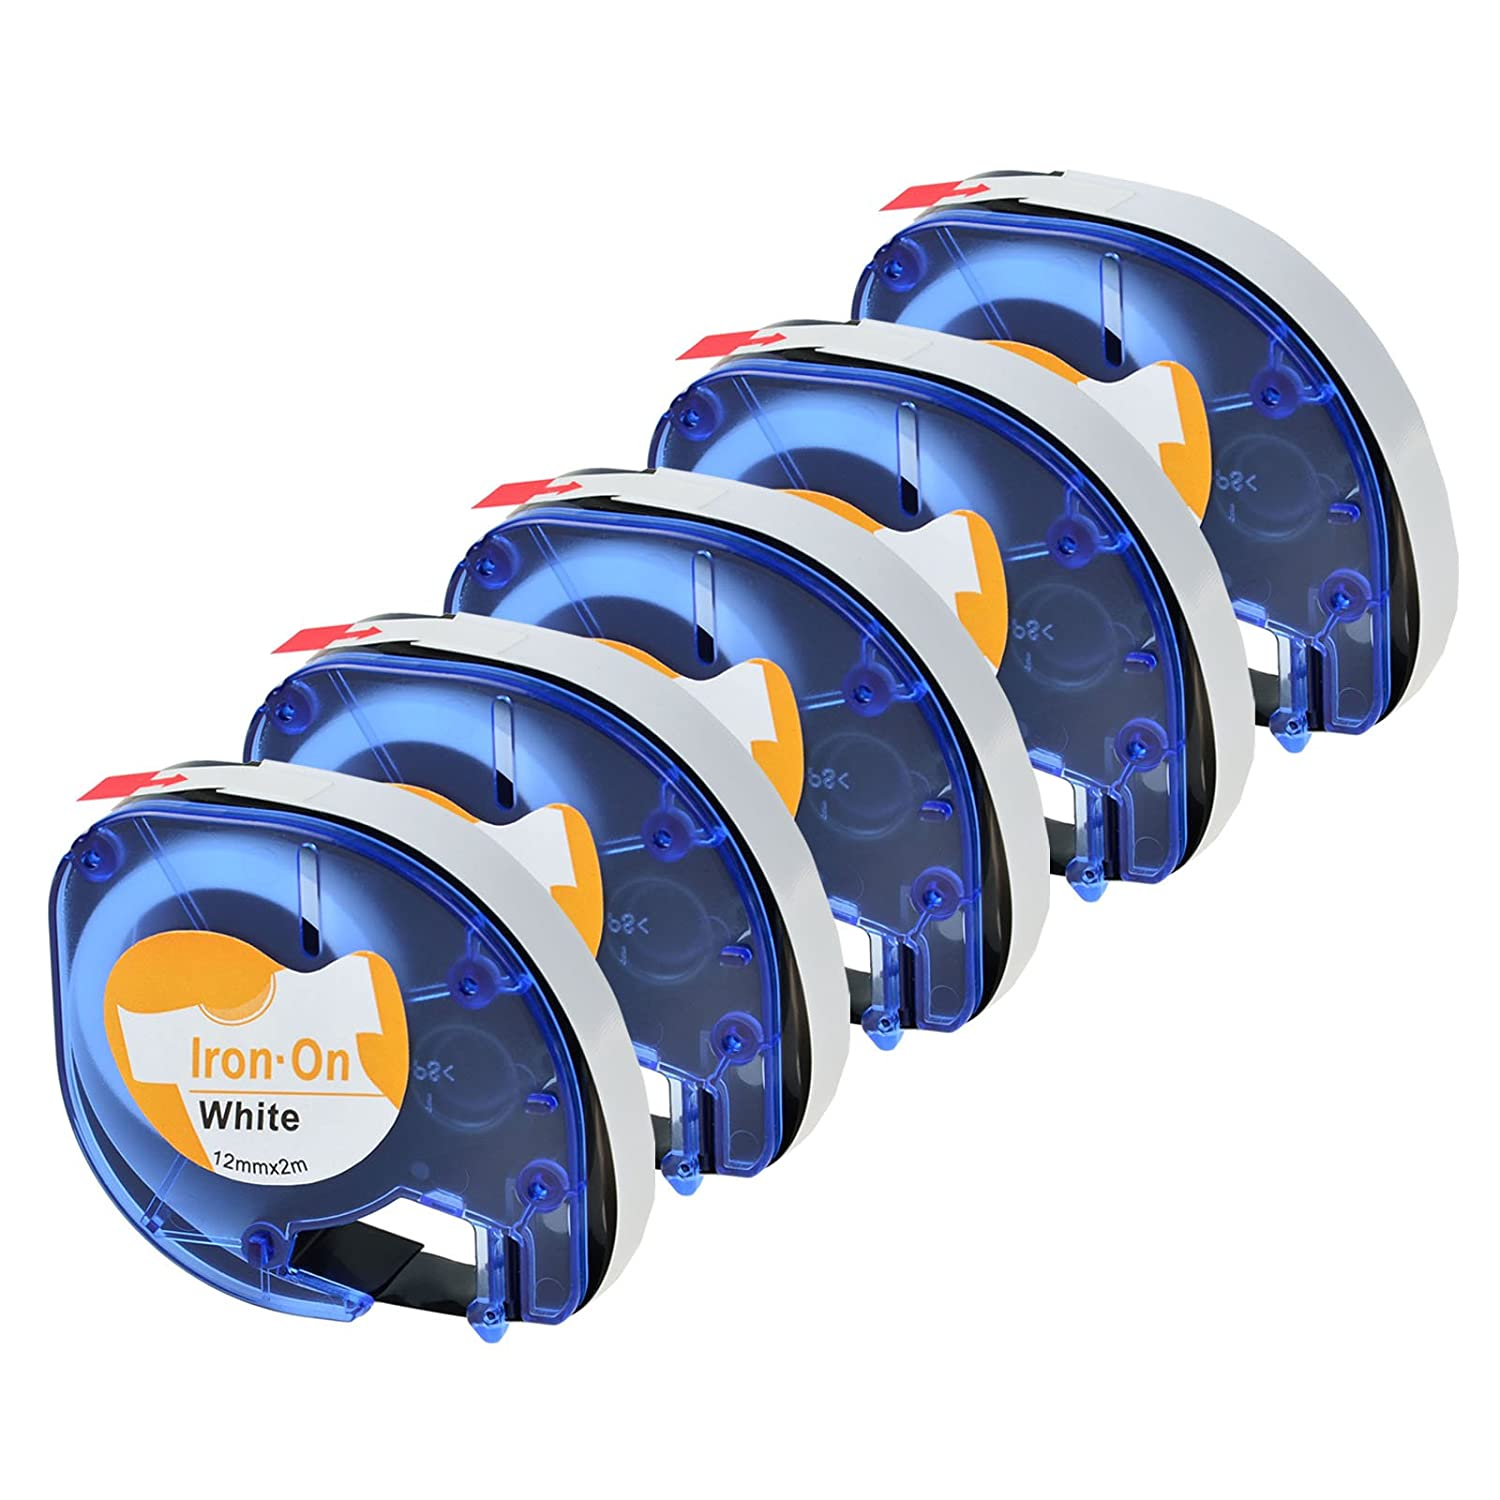 6 PK LT-18771 Fabric Iron-on White Label Tape for DYMO LetraTag Plus LT100H QX50